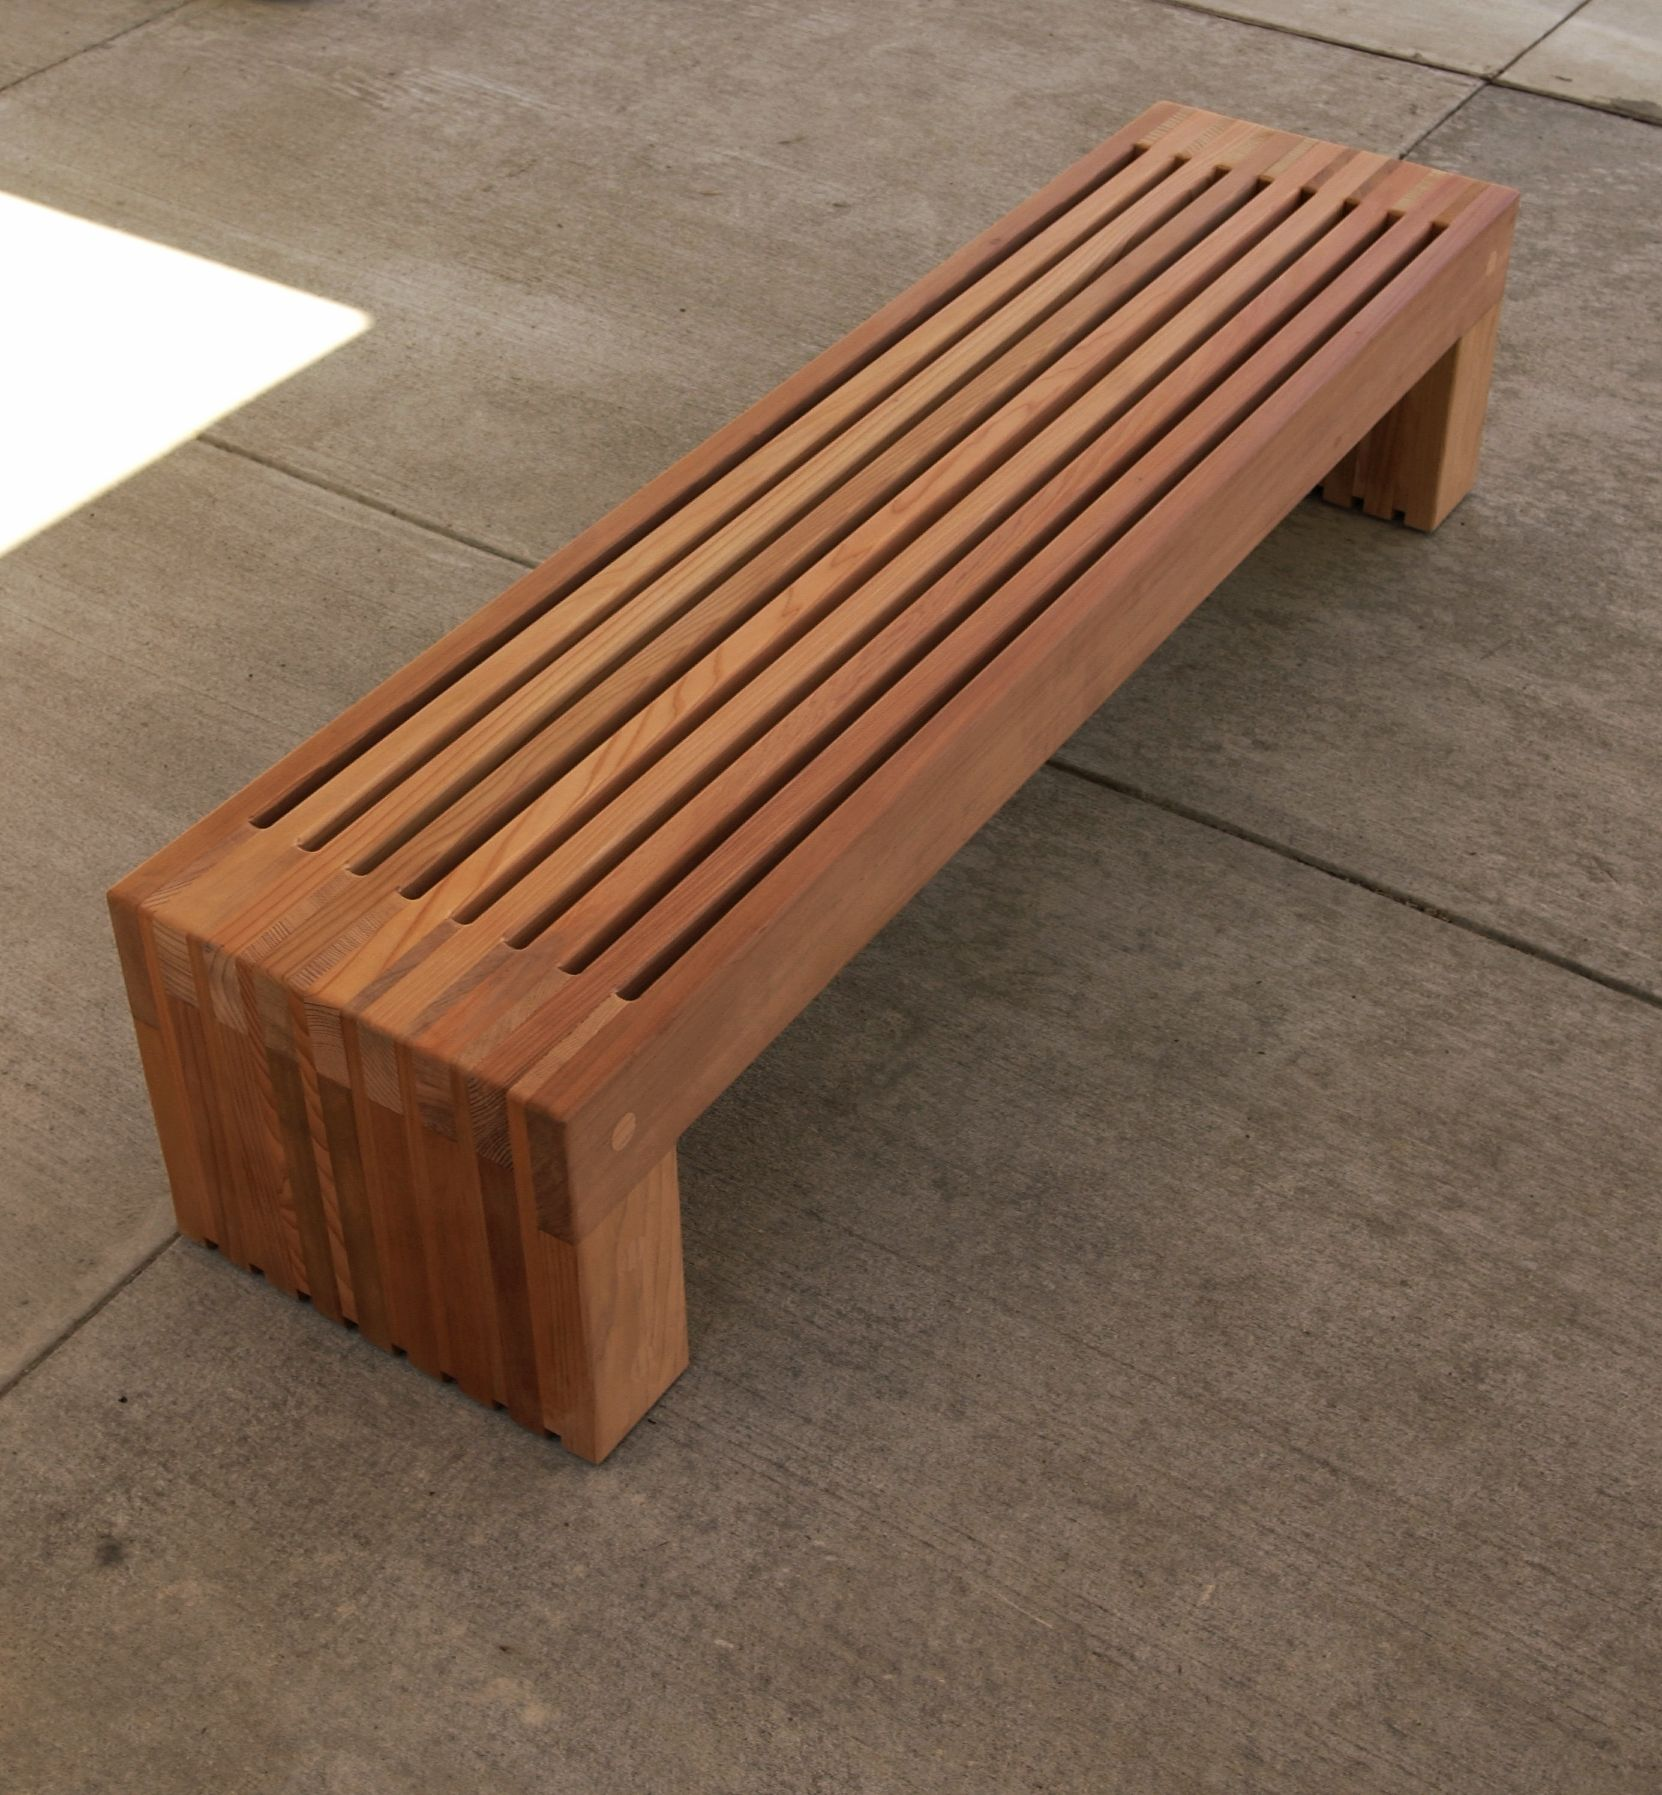 outdoor wood bench reclaimed wood benches patio bench modern outdoor